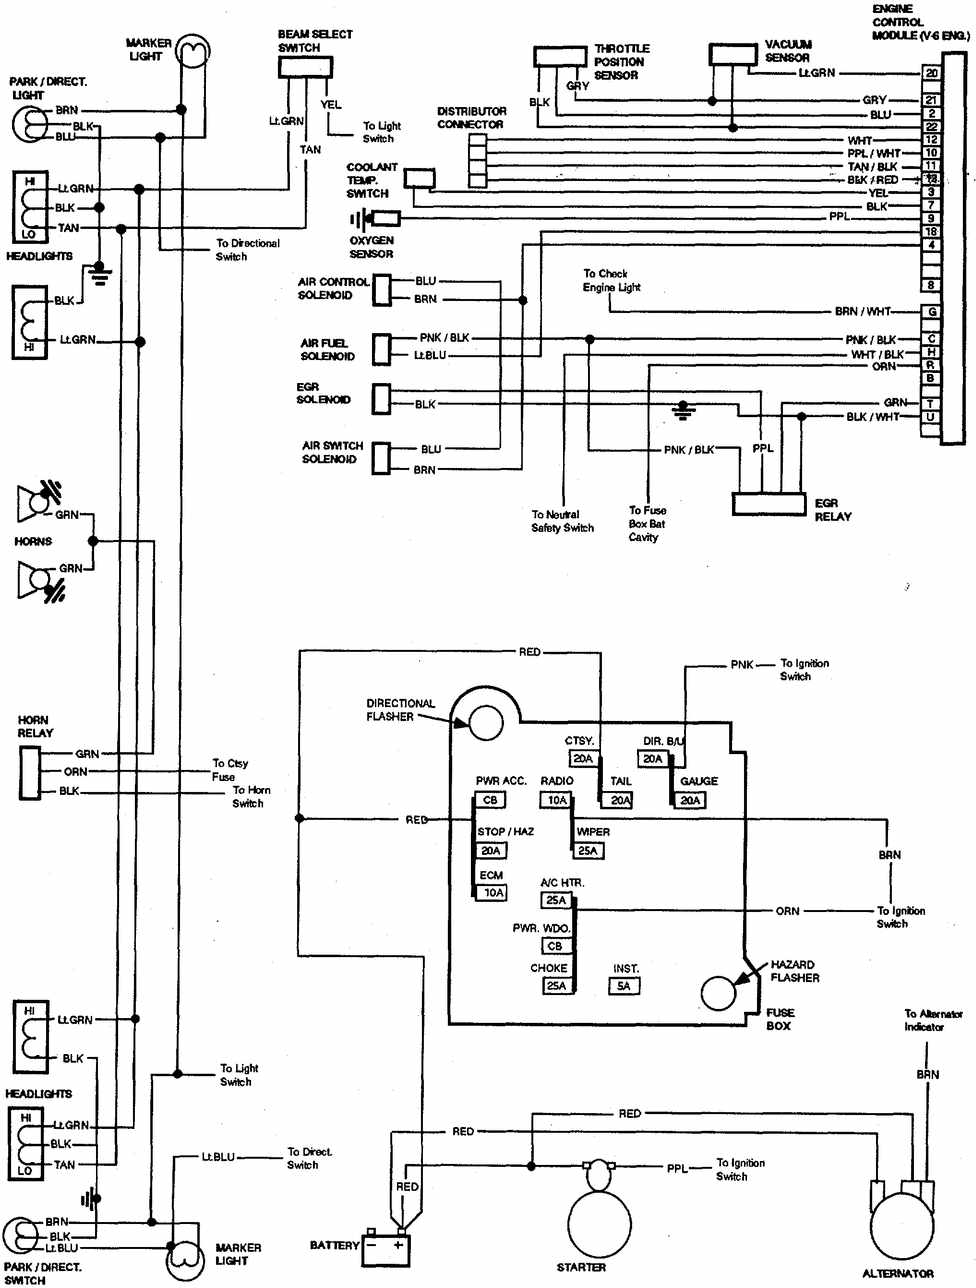 Wiring Diagram Color Codes F150 1991 Guide And Troubleshooting Of Through August 14 2006 Anyone Need Help Ecousticscom Chevrolet V8 Trucks 1981 1987 Electrical All About Diagrams 1990 Ford Ignition